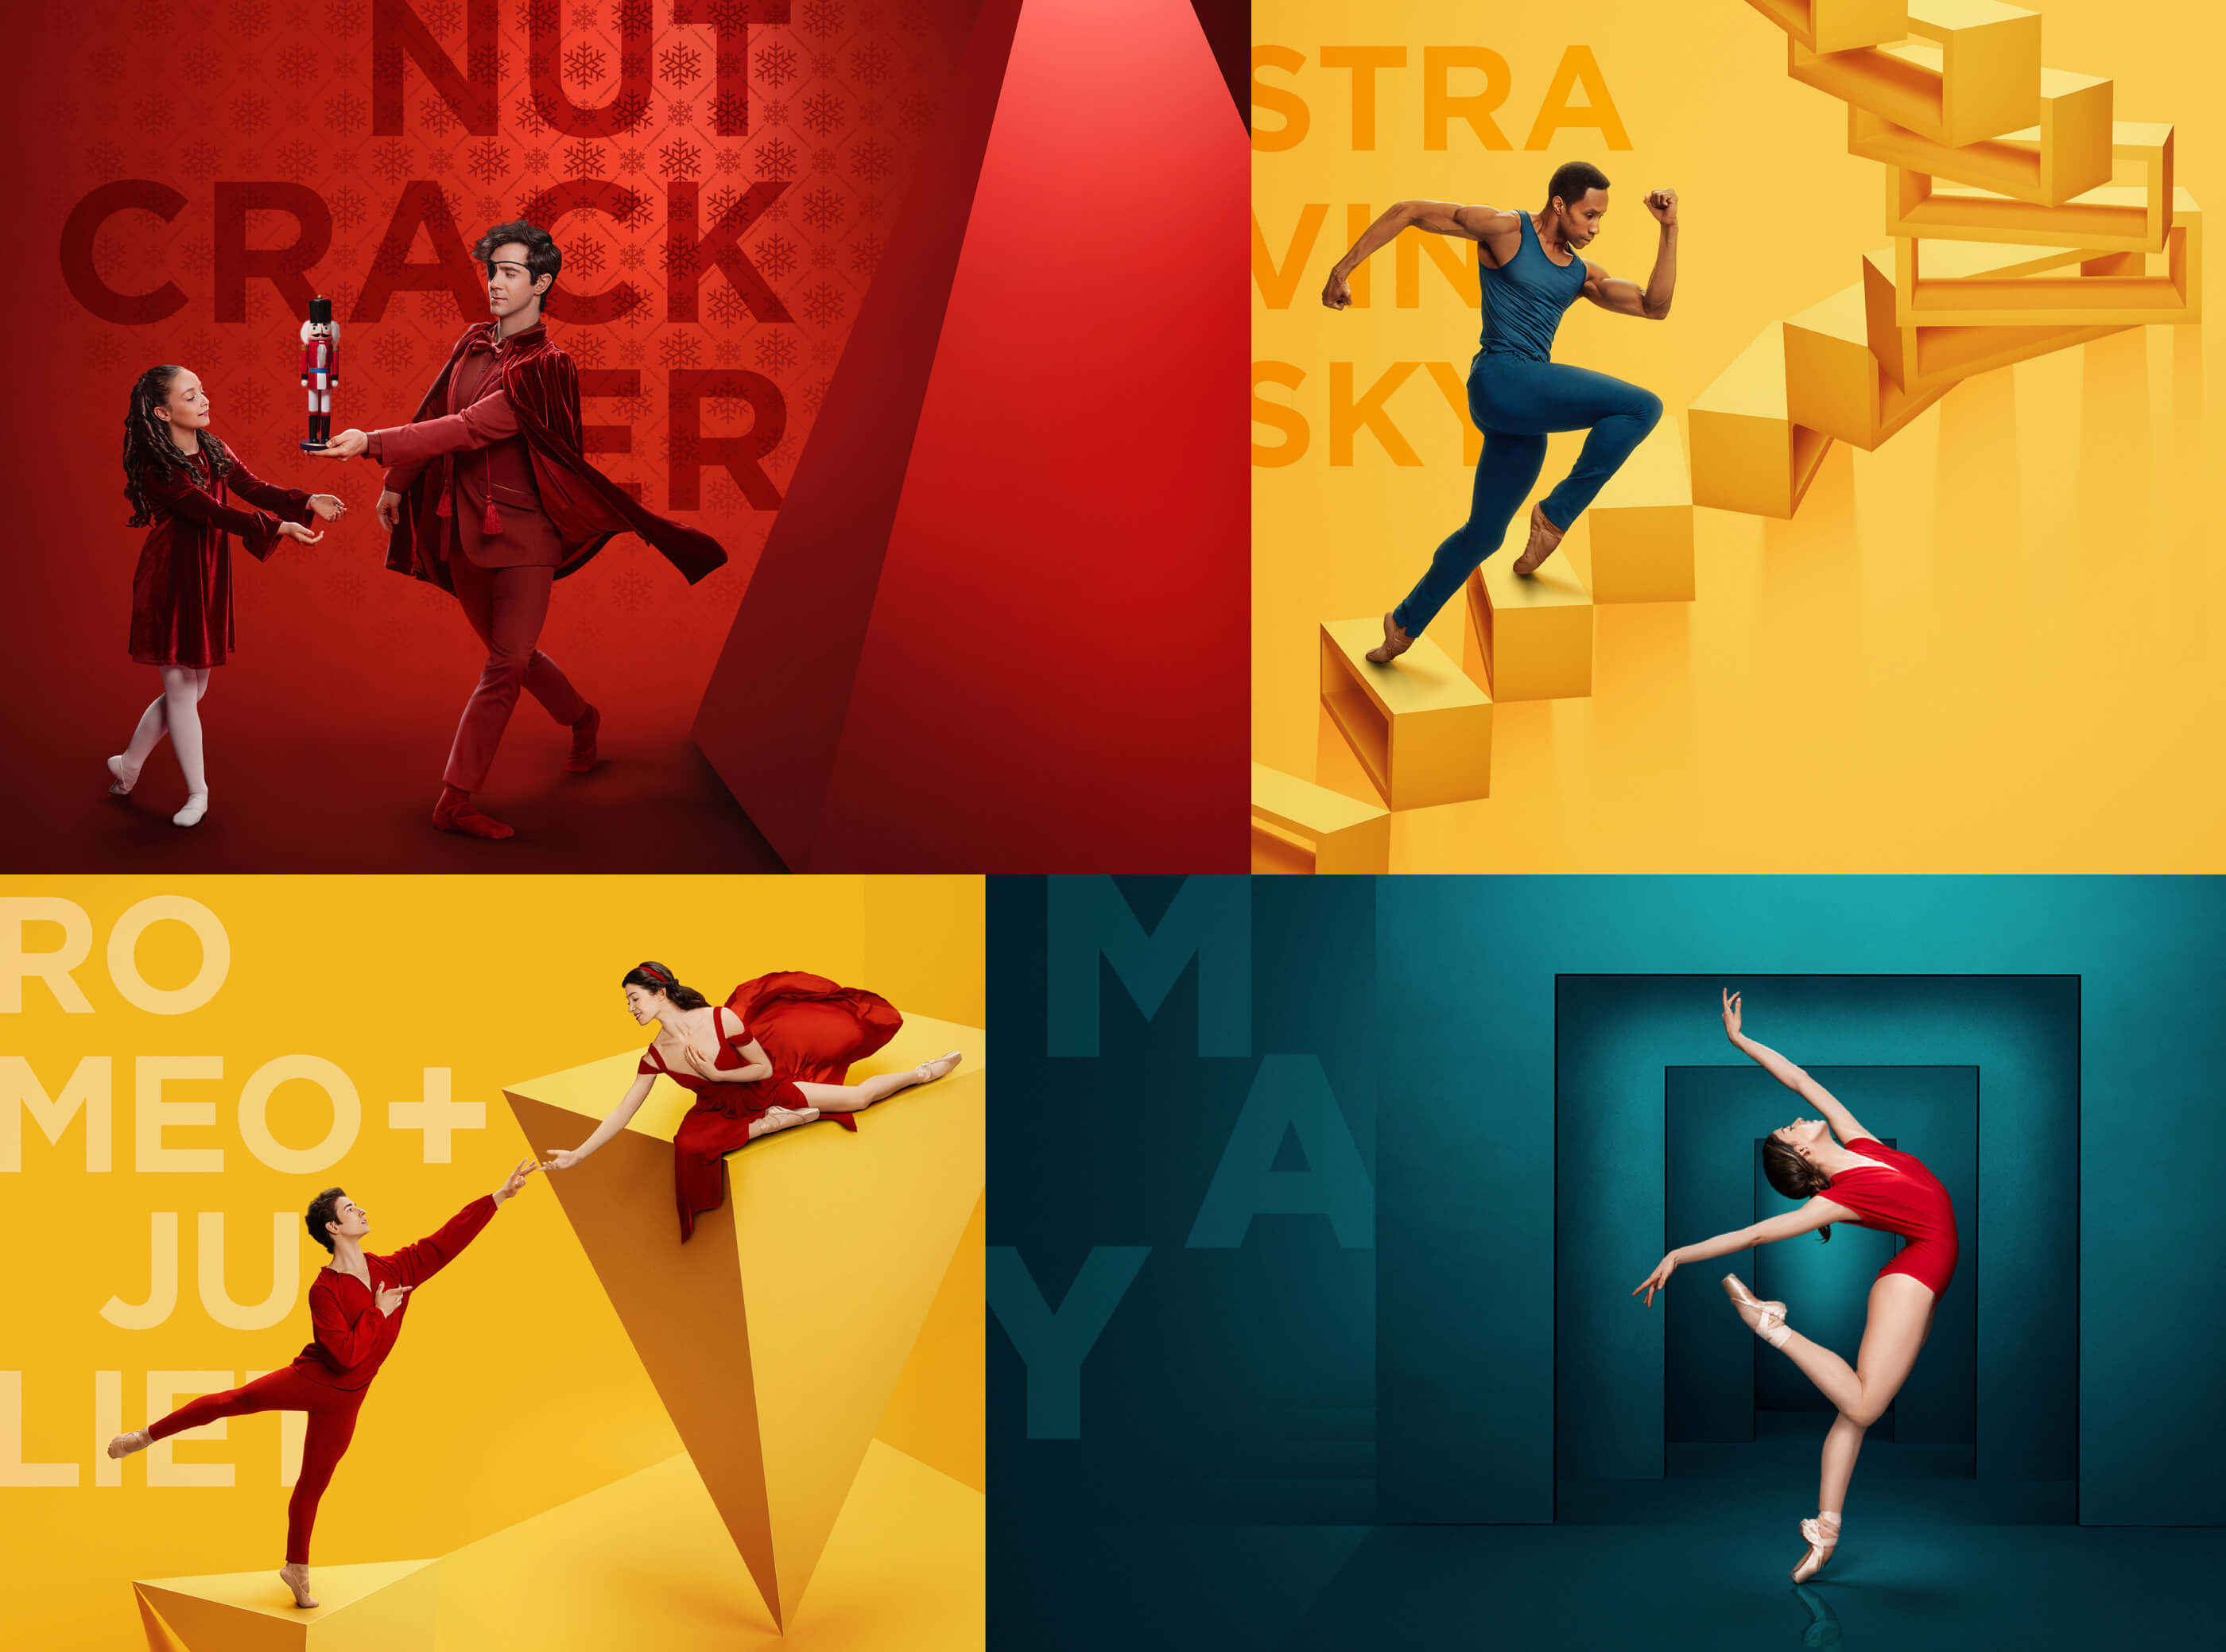 grid of images for The Nutcracker, Stravinsky, Romeo + Juliet, and May